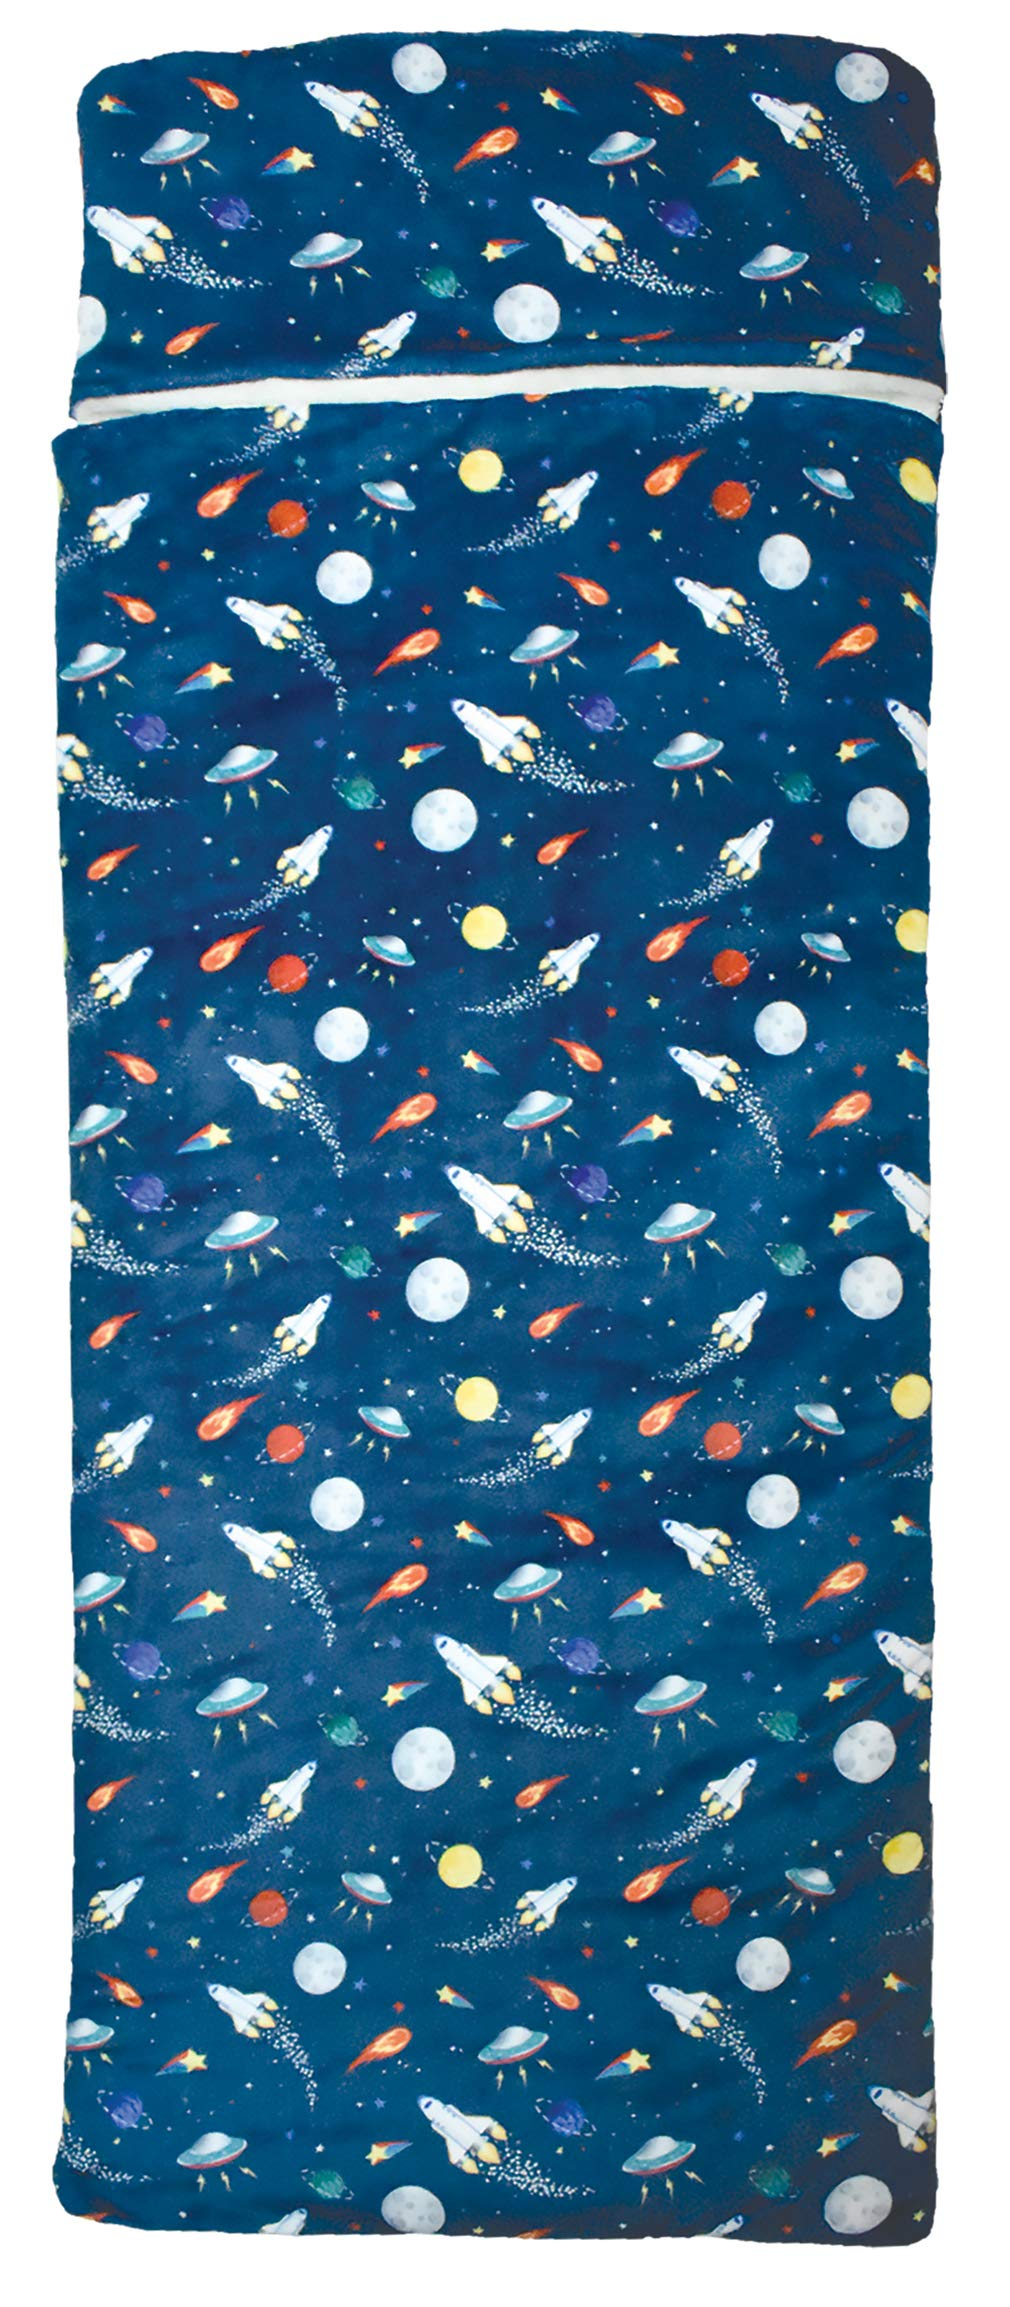 iscream 'Out of This World' 57'' x 28.5'' Faux Sherpa-Lined Silky Silky Fleece Zippered Sleeping Bag